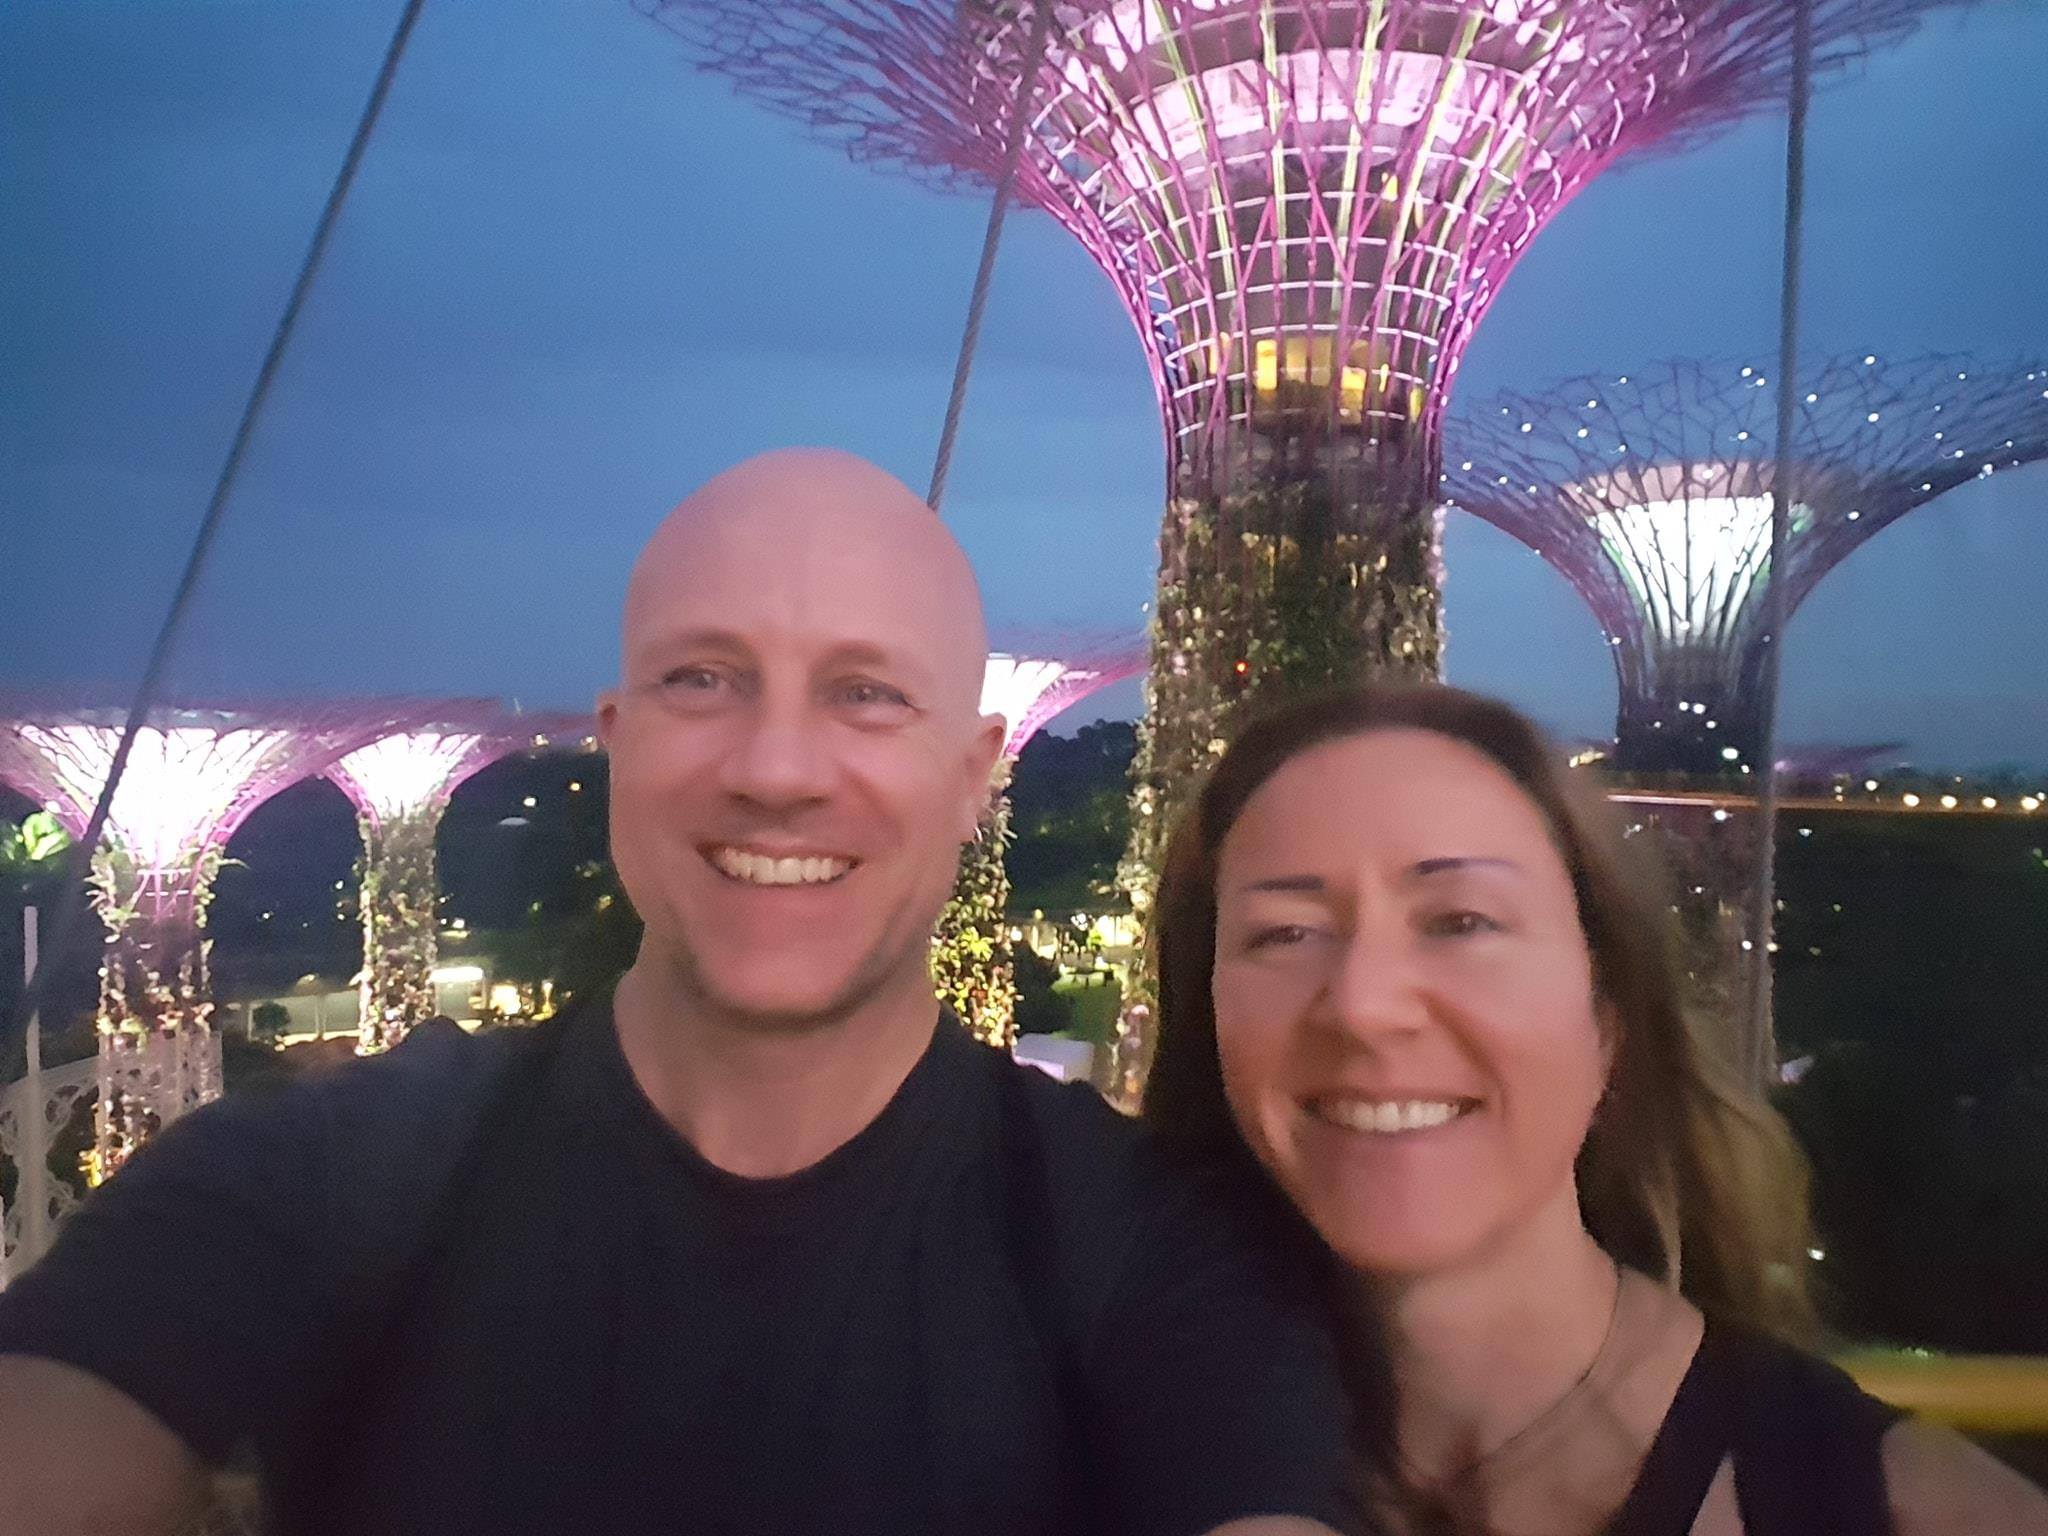 Our cheesy selfie taken on the walkway between the Singapore supertrees at Gardens by theBay